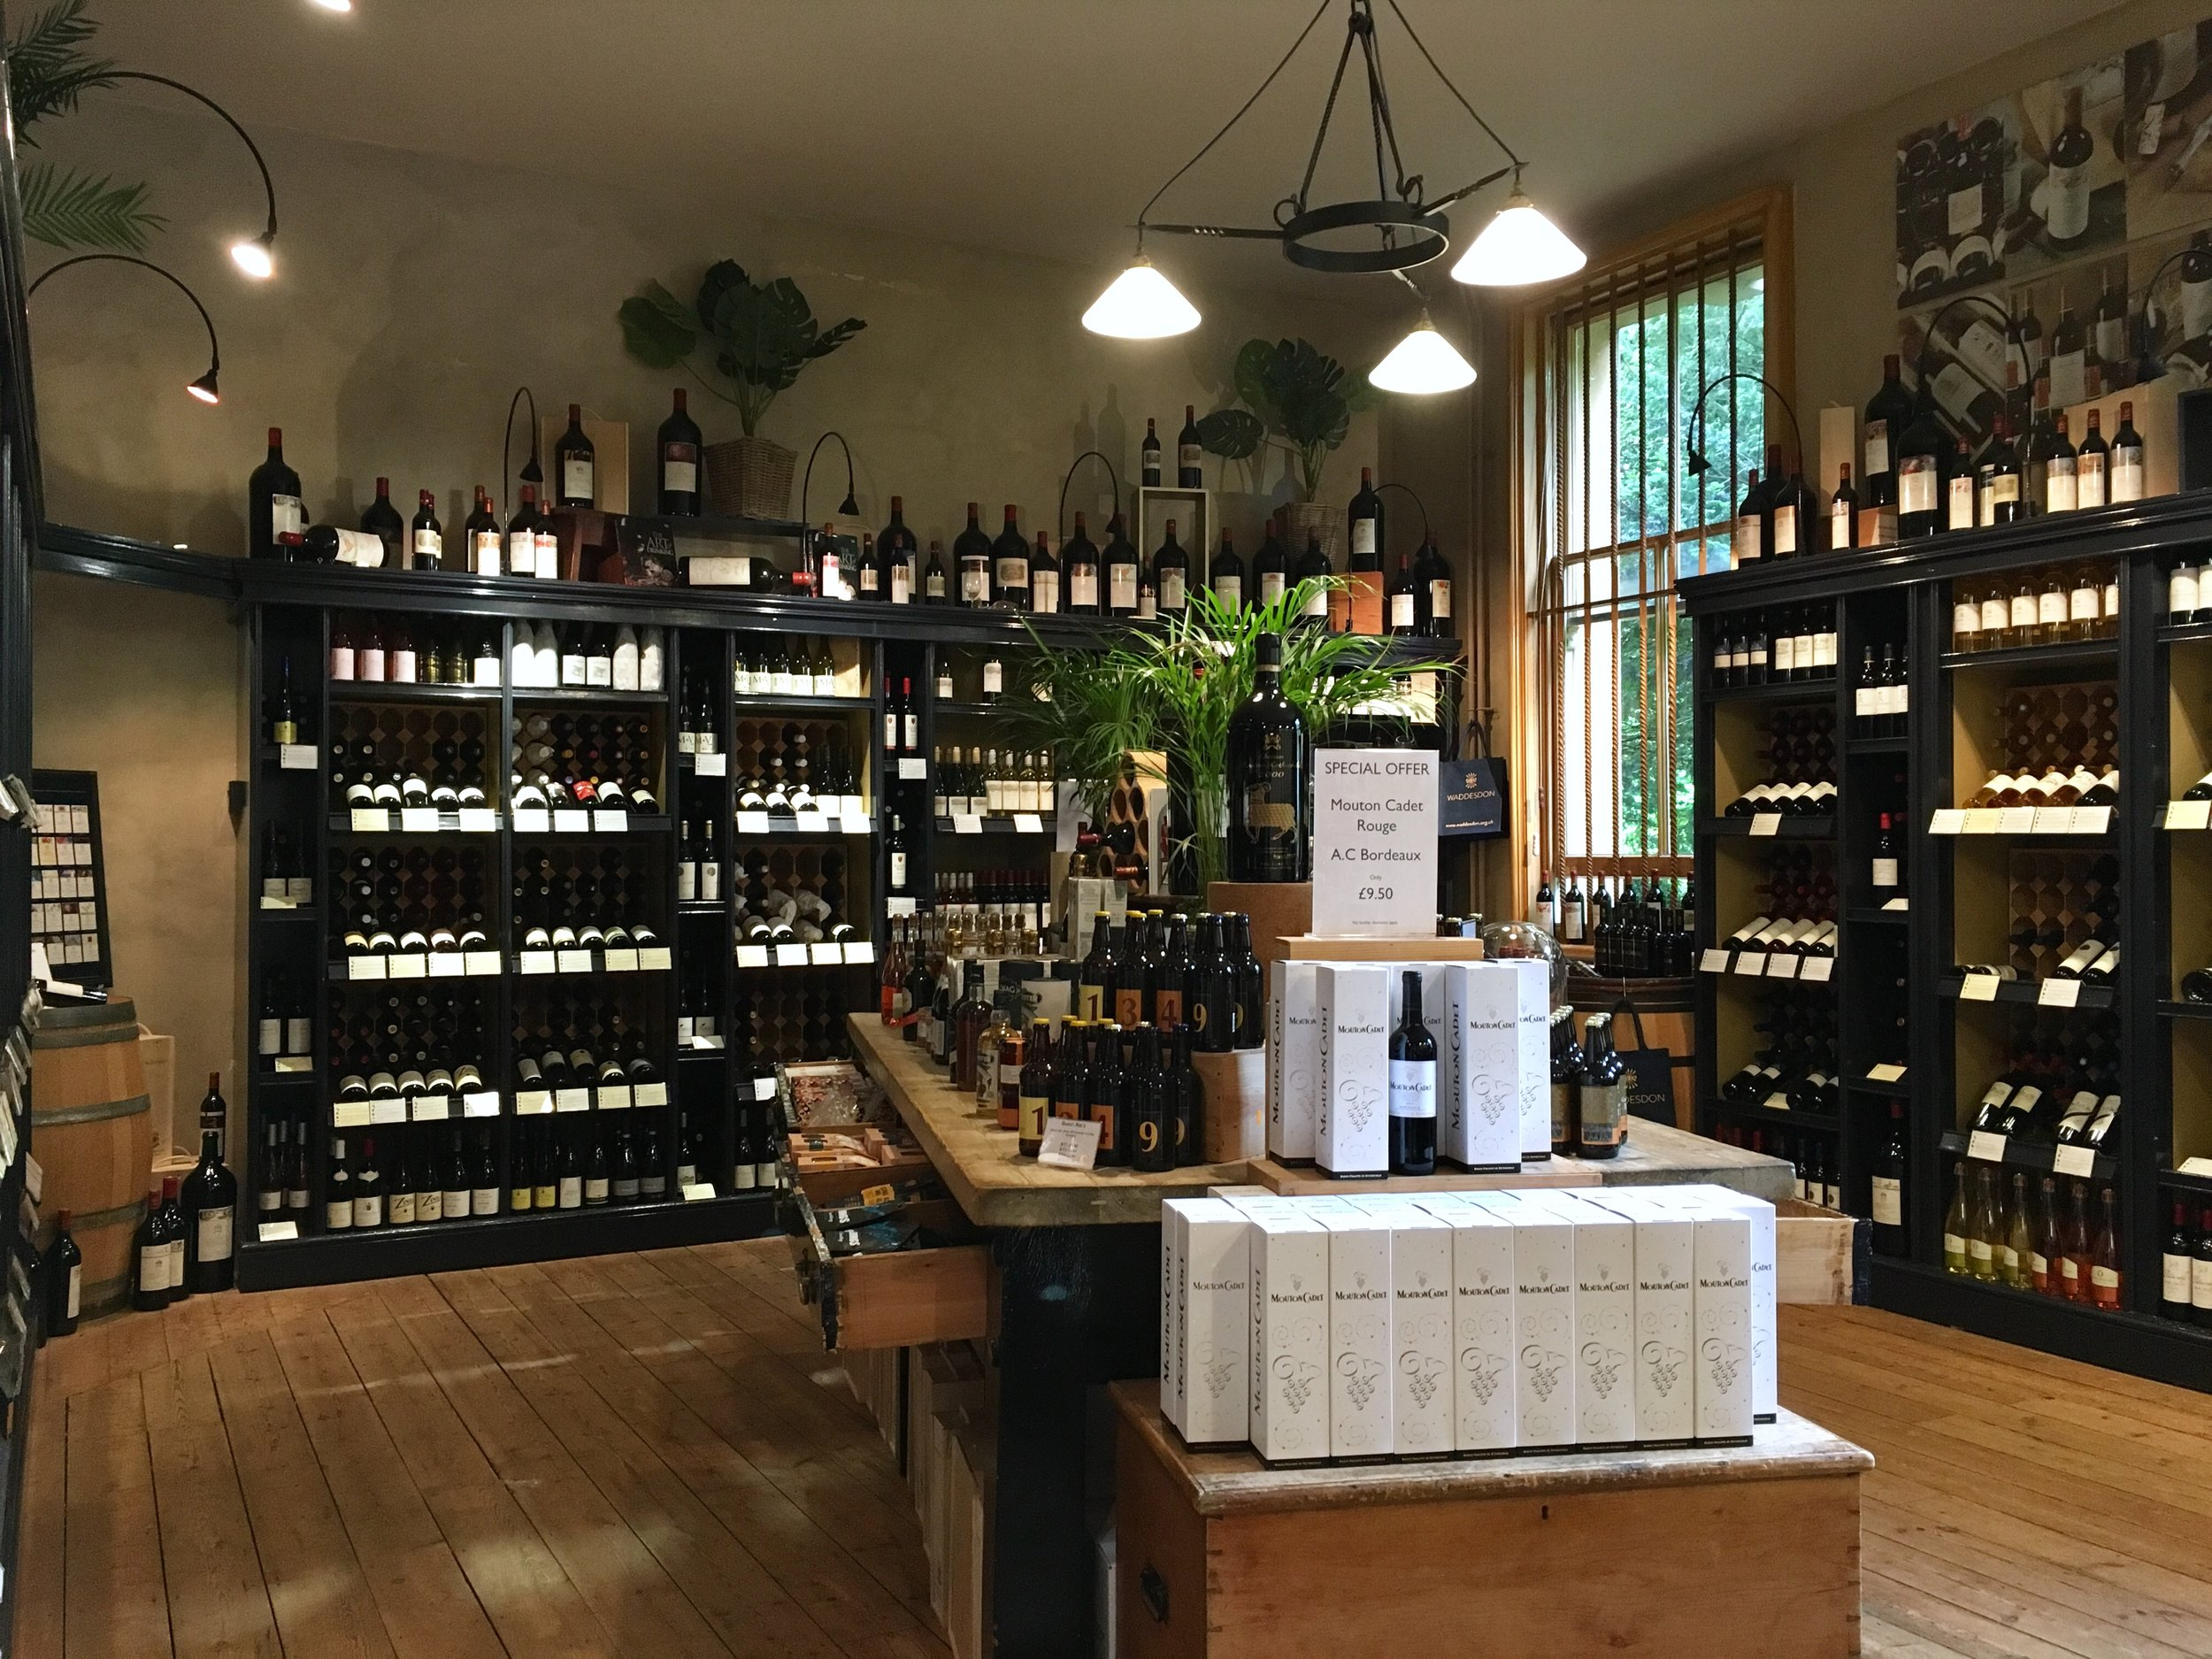 UK Waddesdon Manor wine shop National Trust French Chateau Rothschild Buckinghamshire garden chateau Eileen Hsieh Follow That Bug .jpg